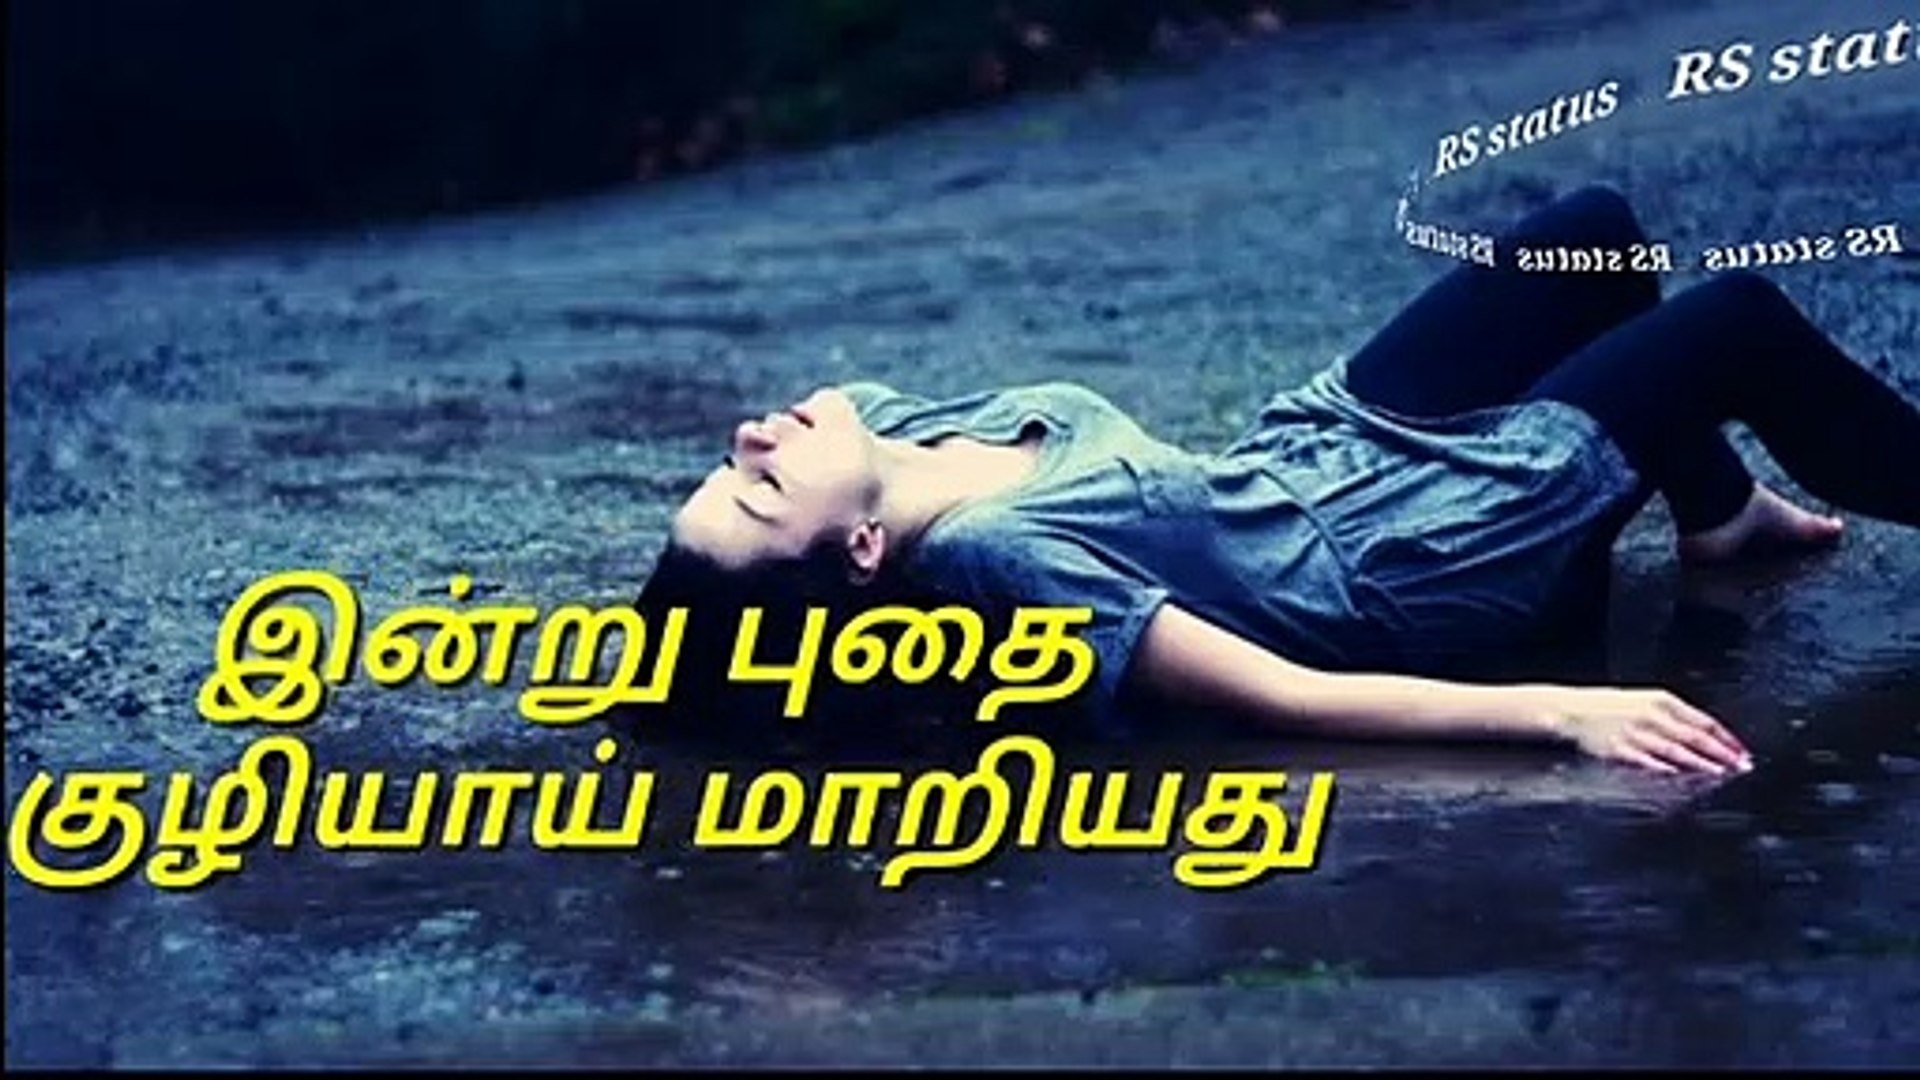 Tamil songs status RS status Tamil what's app status sad status emotional and mental status